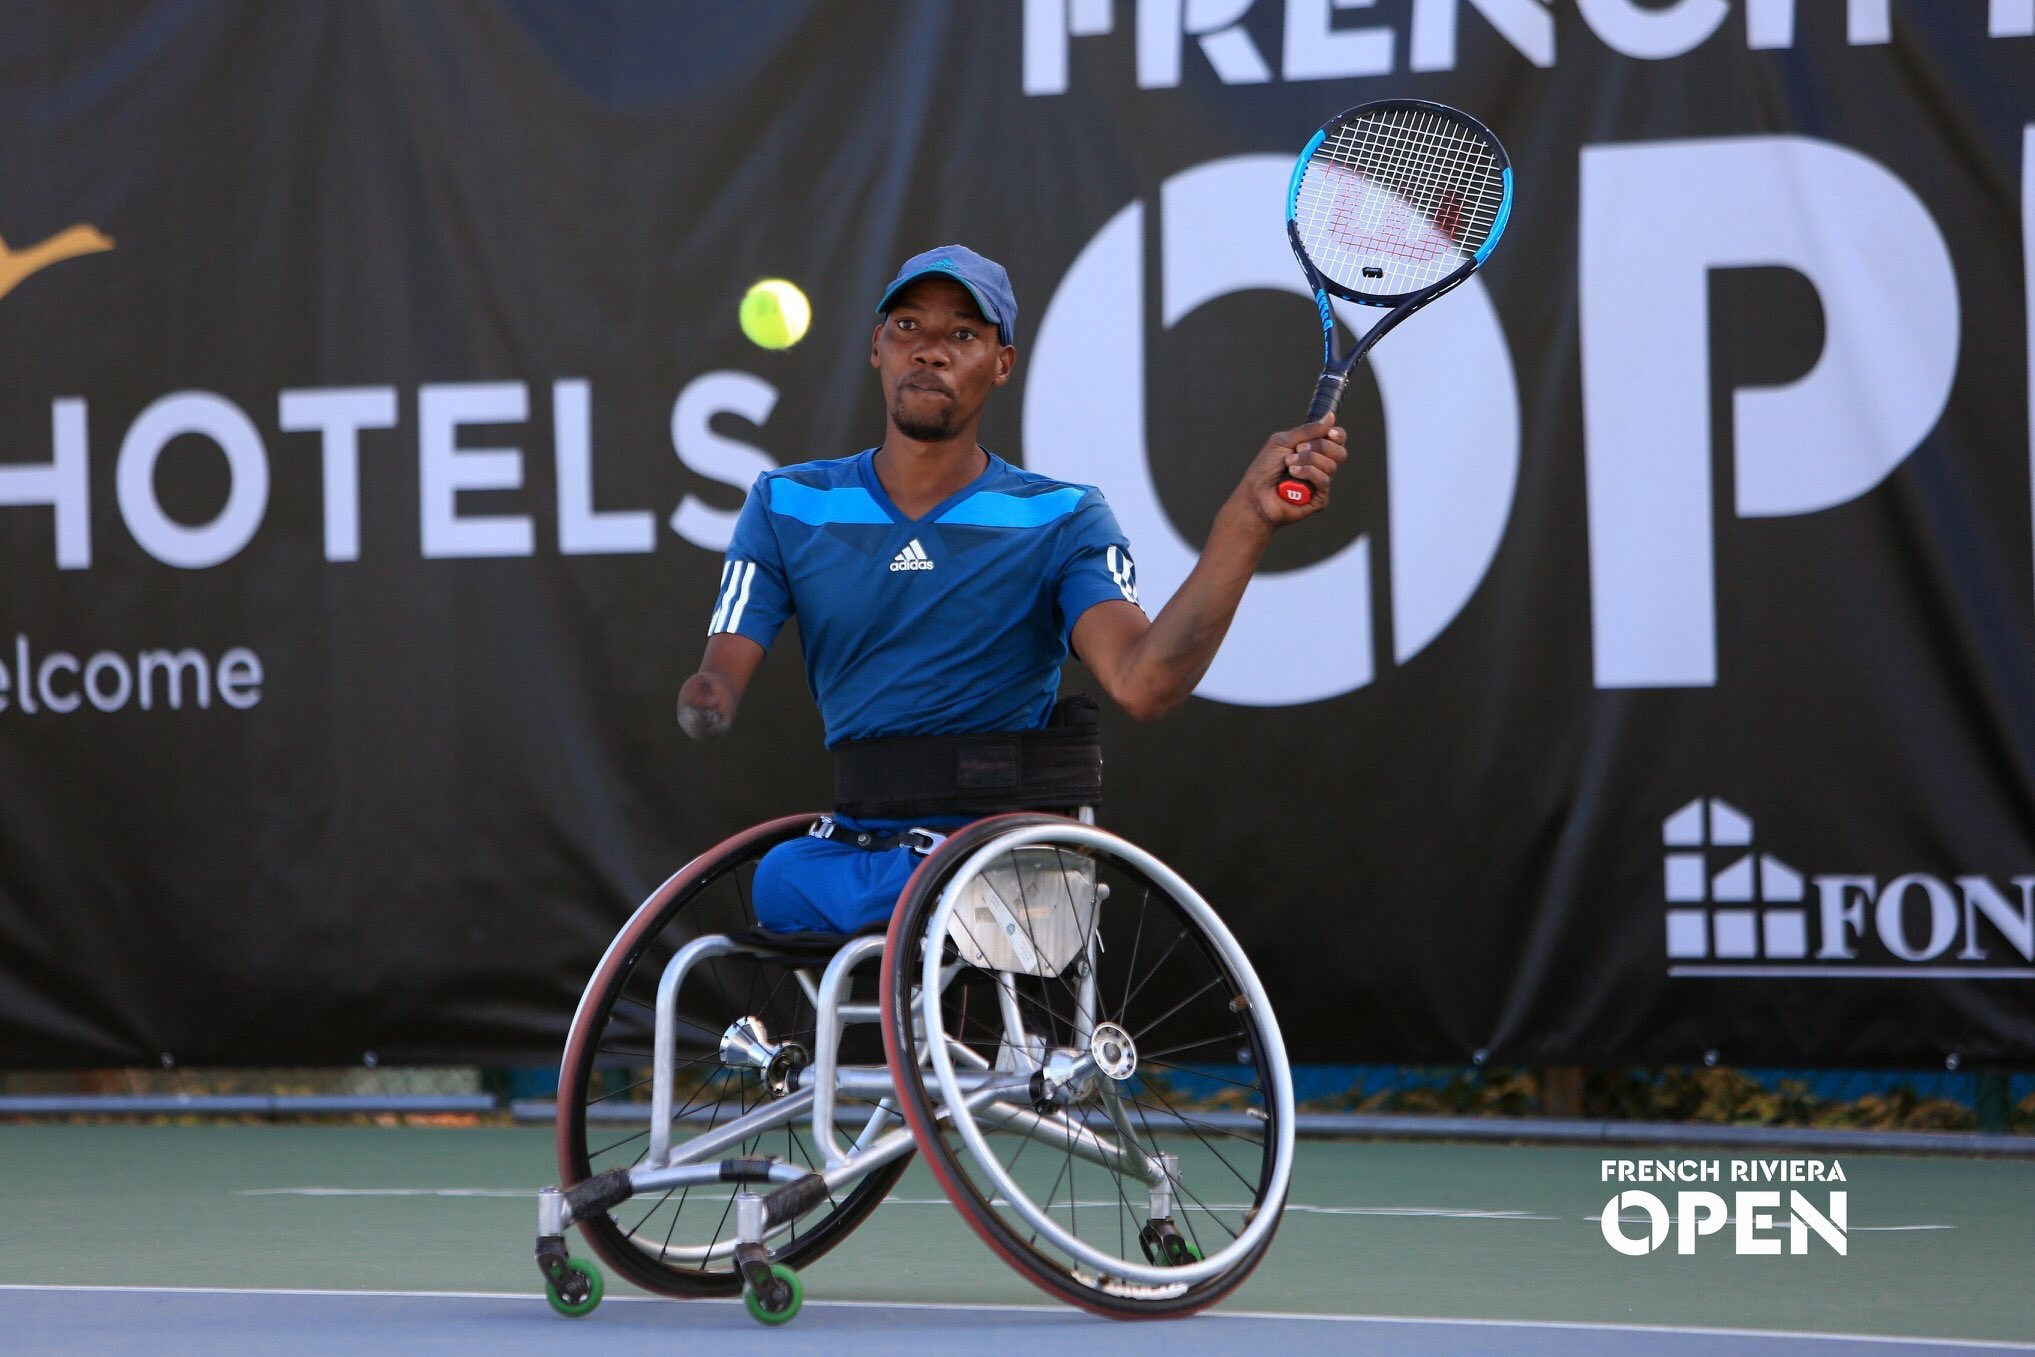 Sithole falls at final hurdle in French Riviera Open